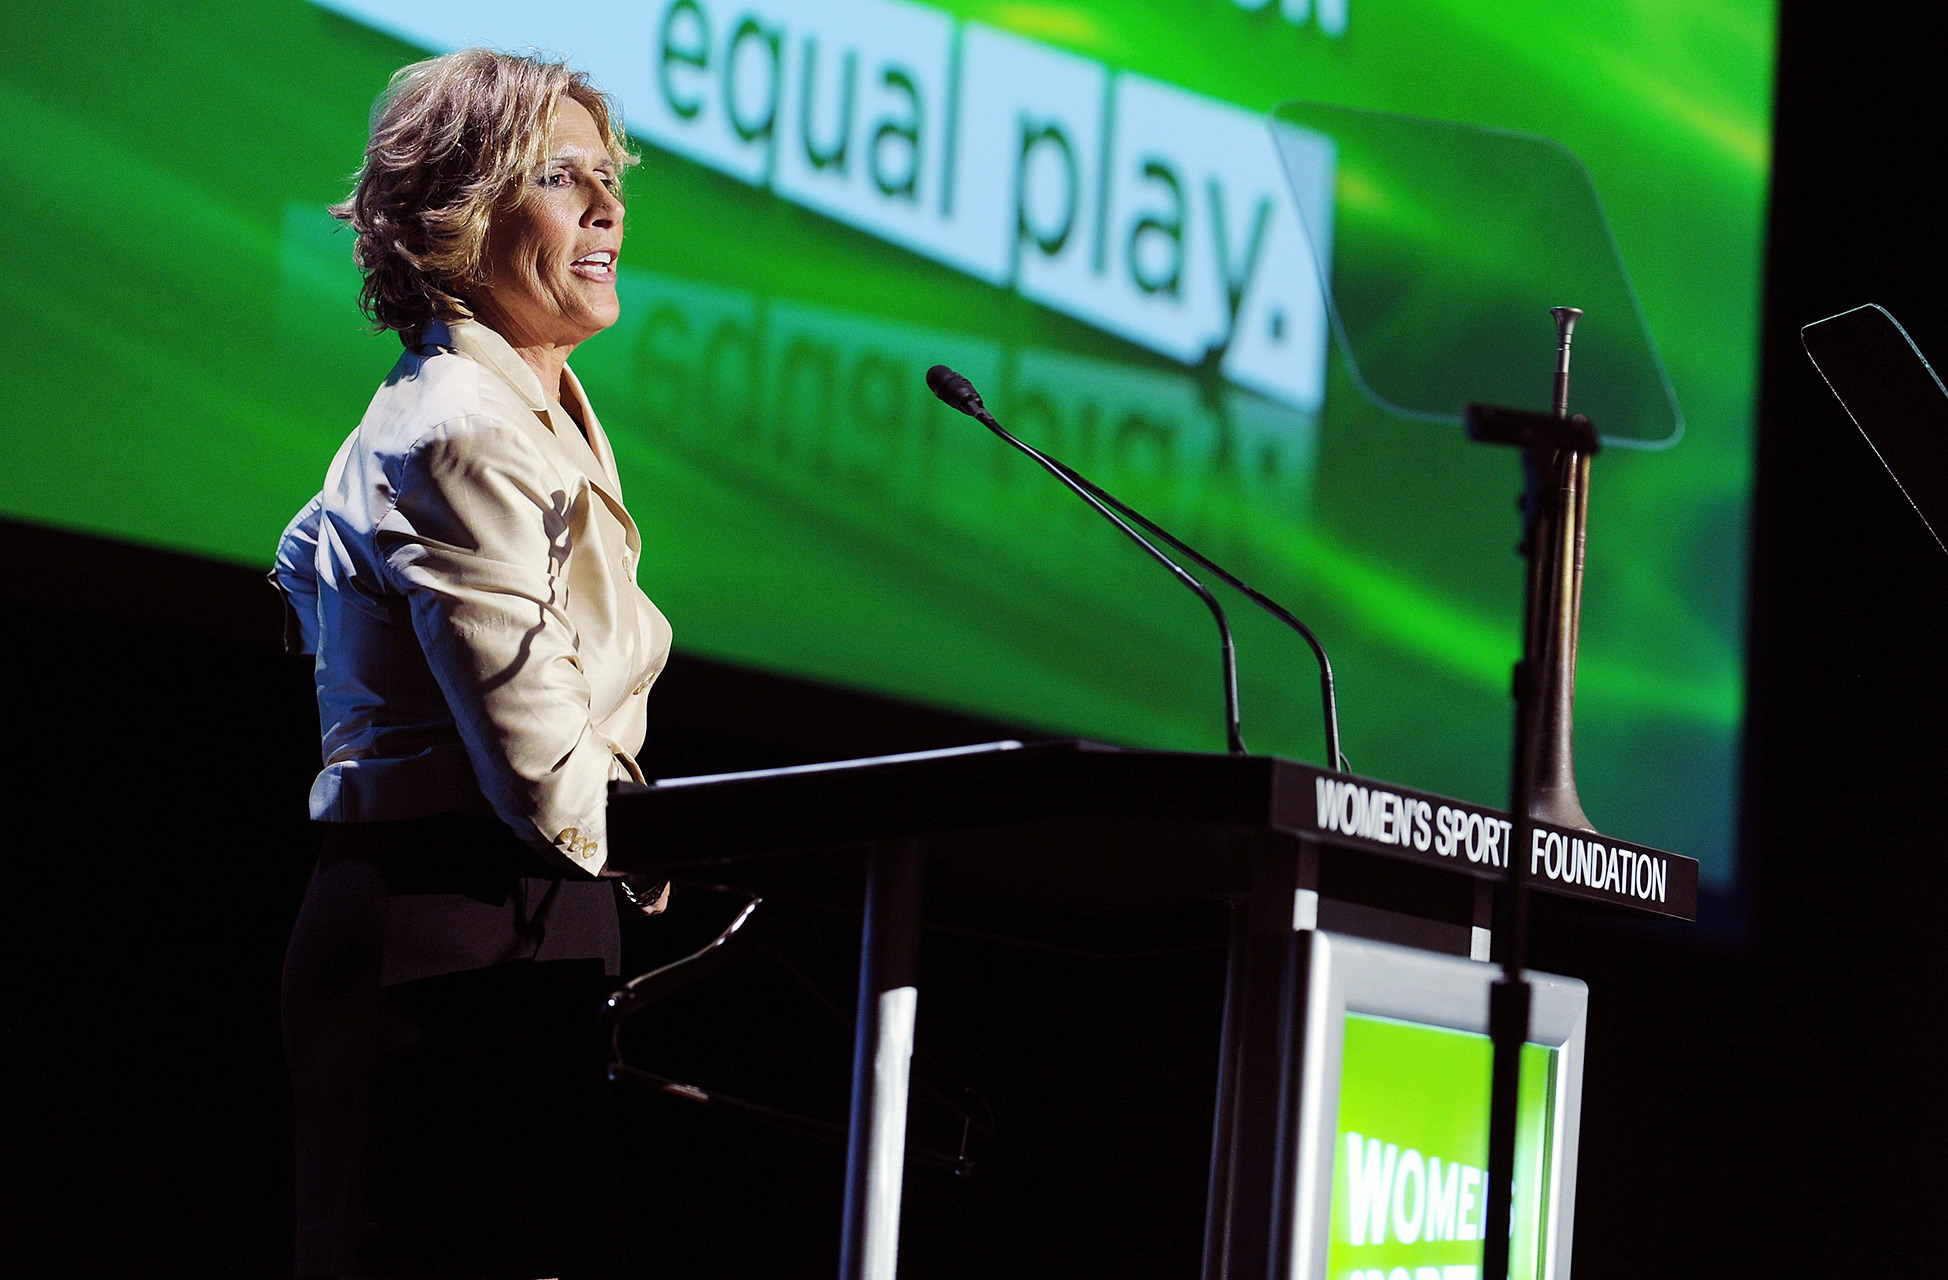 Diana Nyad is a member of the National Womens Hall of Fame and the International Womens Sports Hall of Fame. She also is a former Womens Sports Foundation trustee.